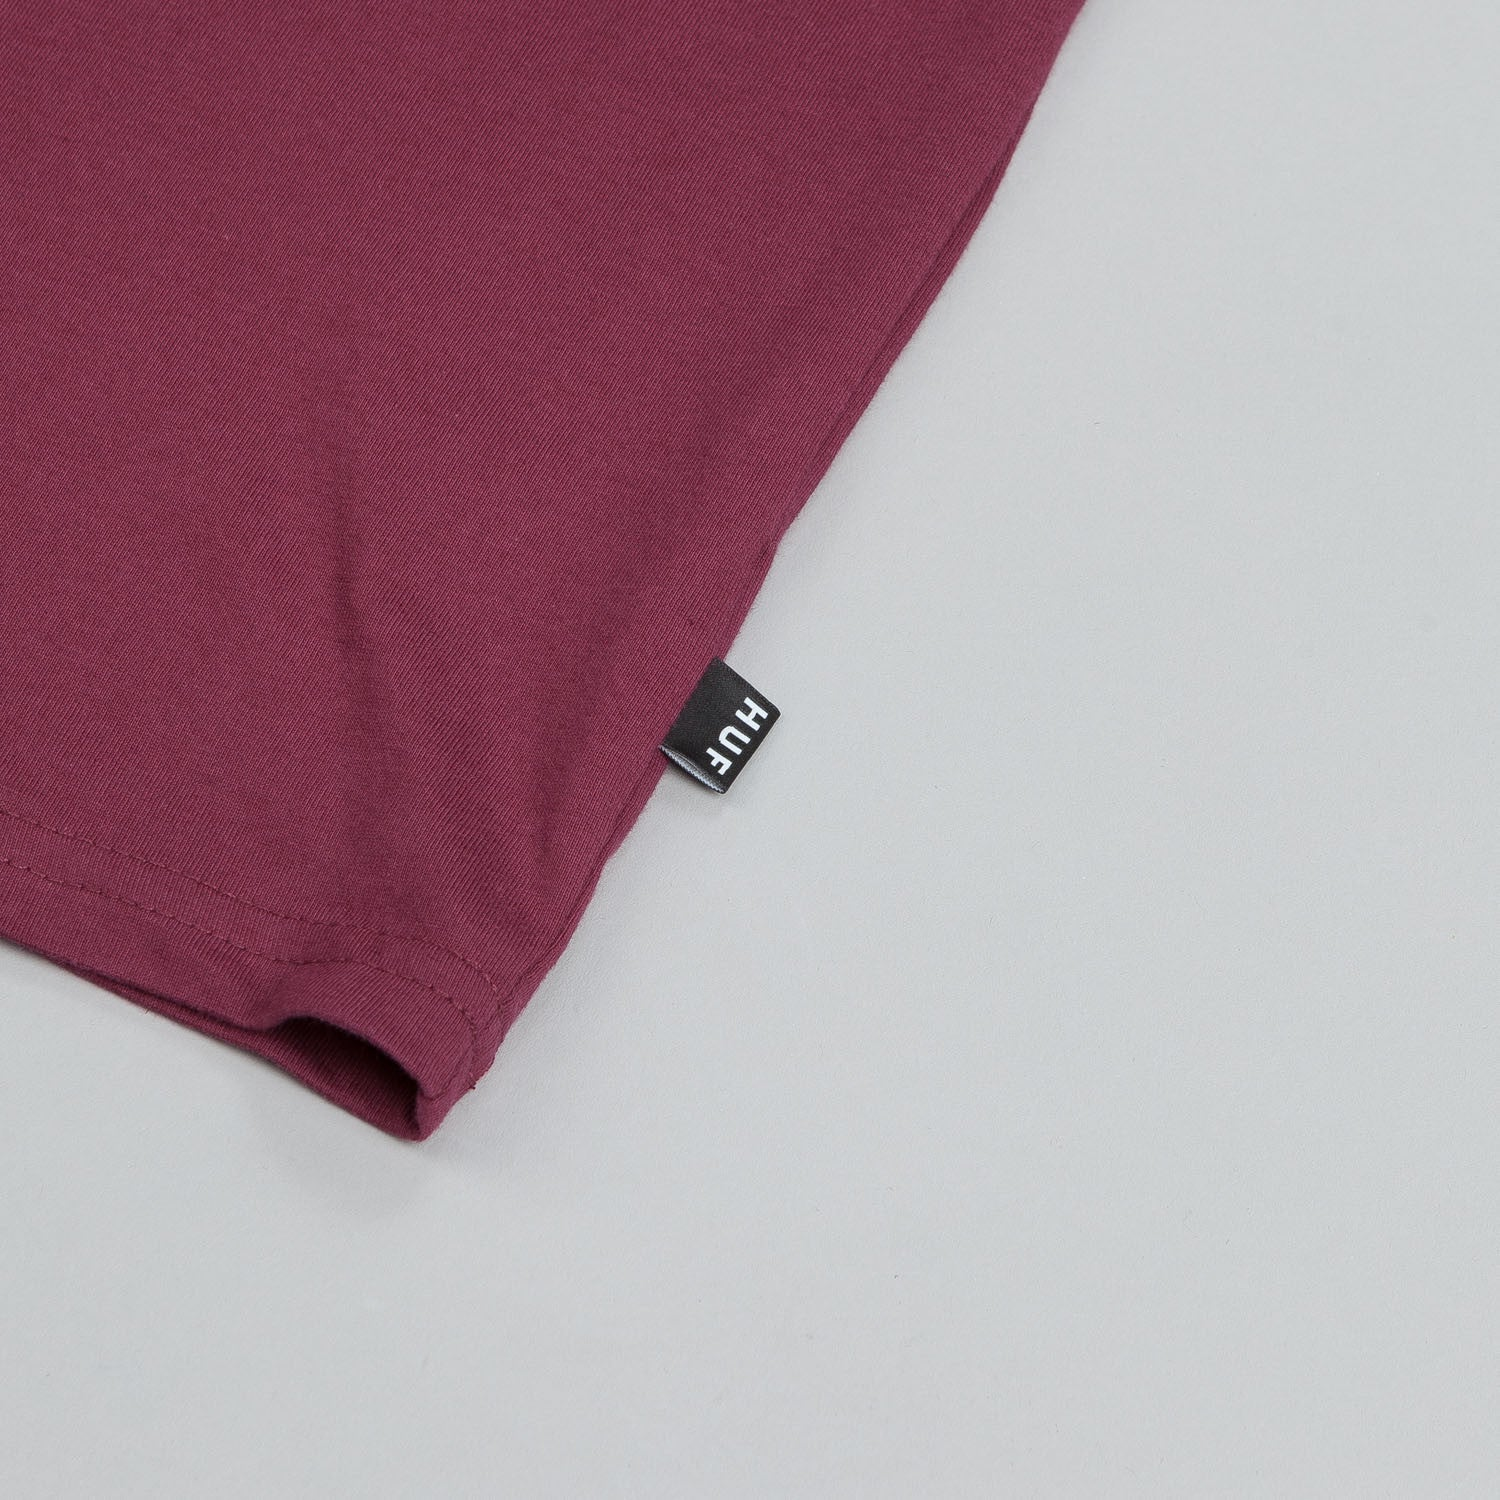 HUF Classic H Pocket T Shirt Wine